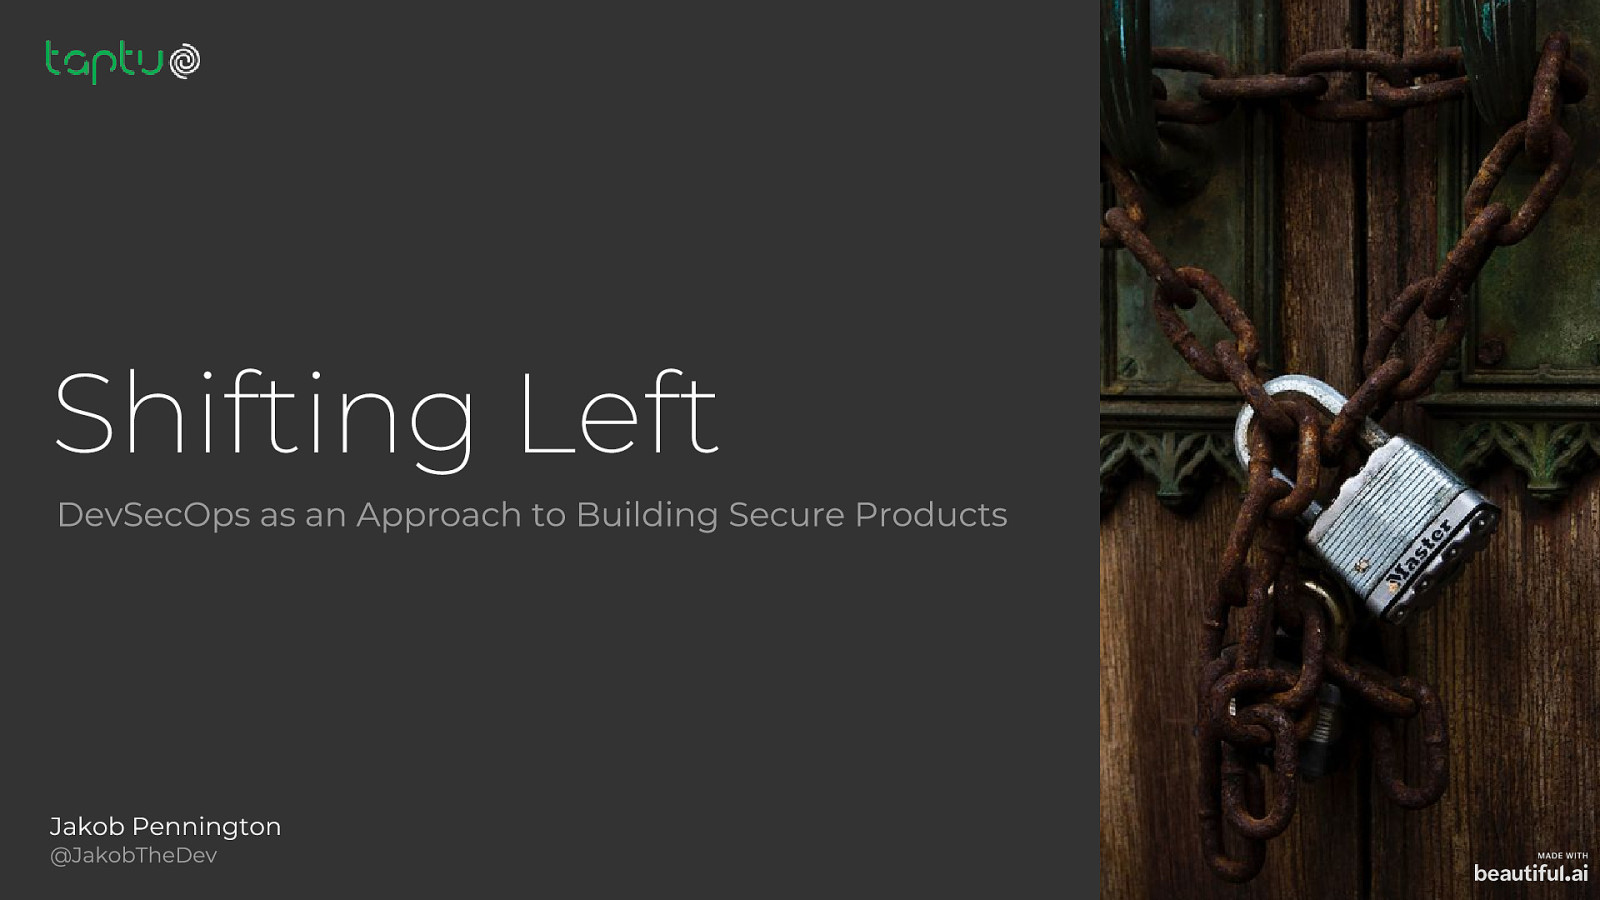 Shifting Left: DevSecOps as an Approach to Building Secure Products